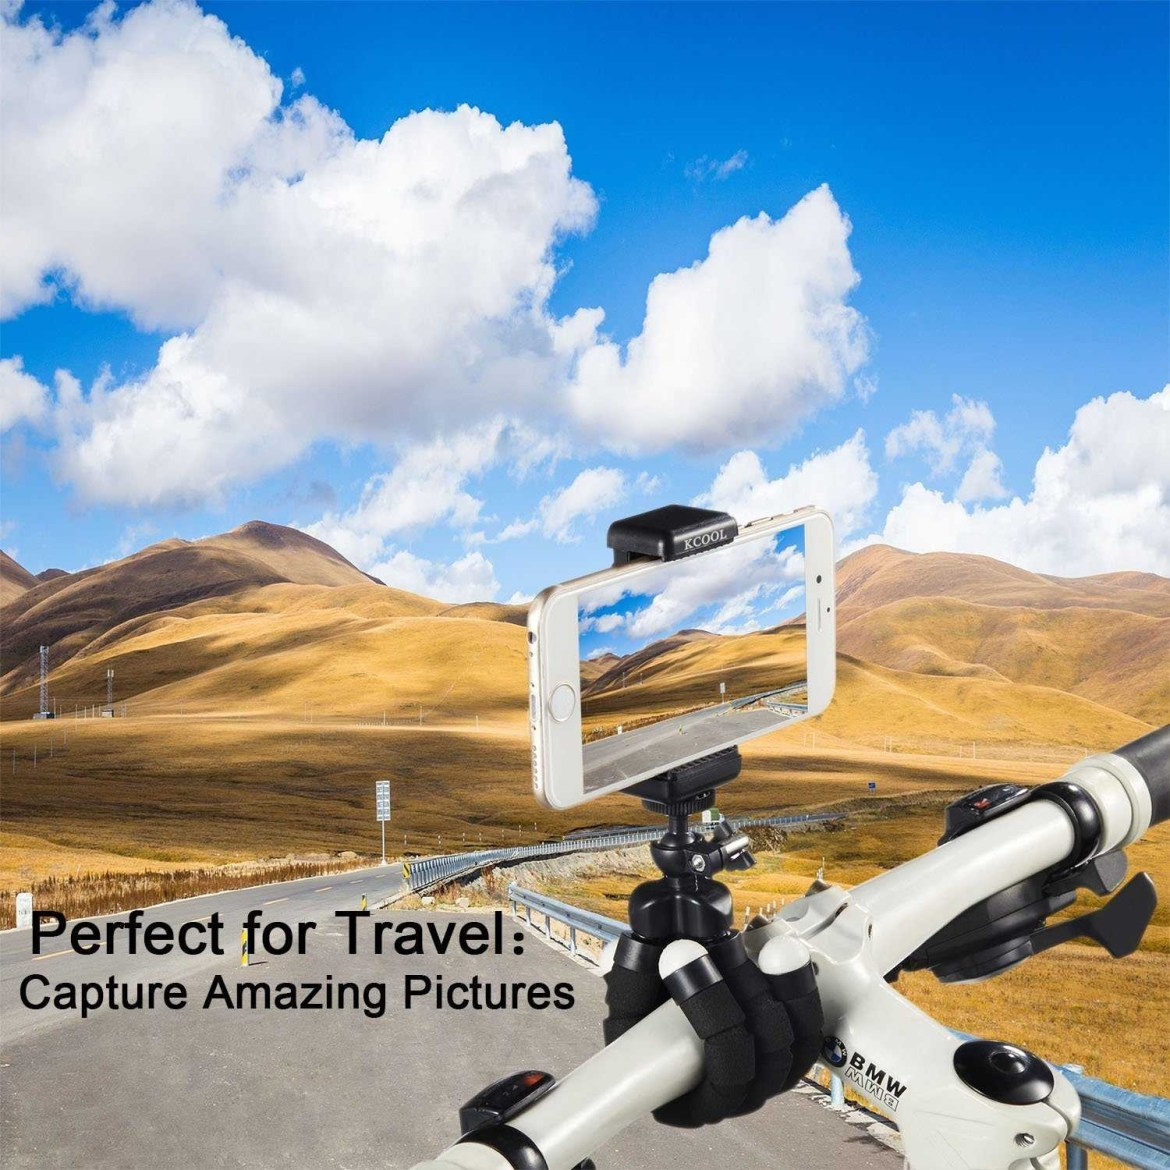 6bd0d28403bdec48dde5d7b2afbf2579 Octopus Tripod Stand Holder & Remote For Smartphones & Camera   Black